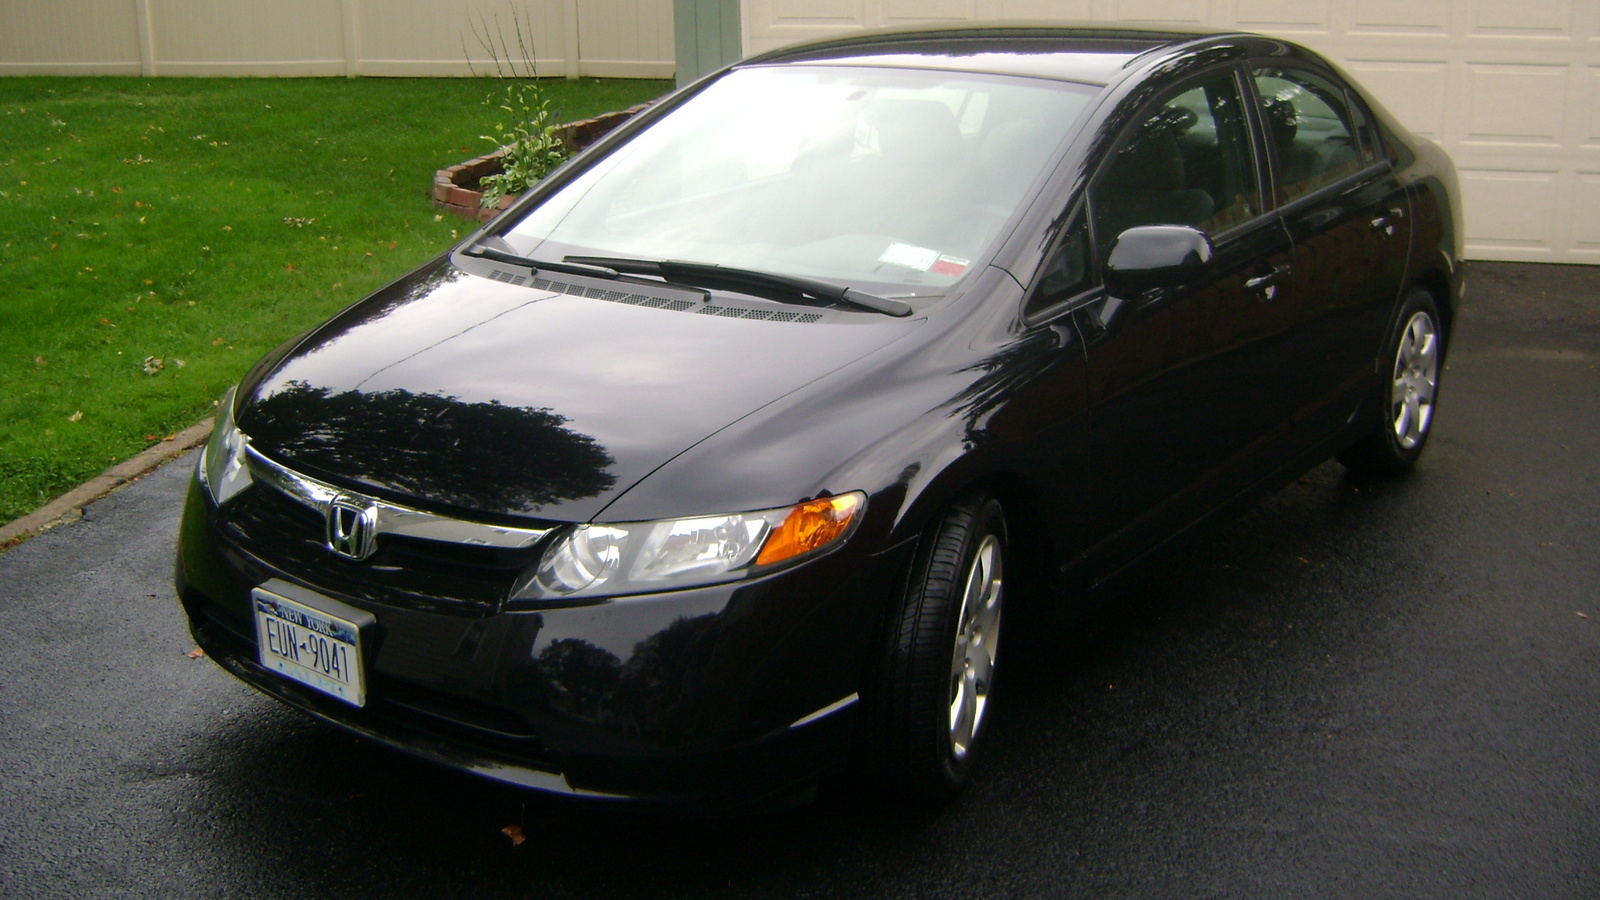 pin 2007 honda civic si 4 door sedan for sale in woodside ny on pinterest. Black Bedroom Furniture Sets. Home Design Ideas